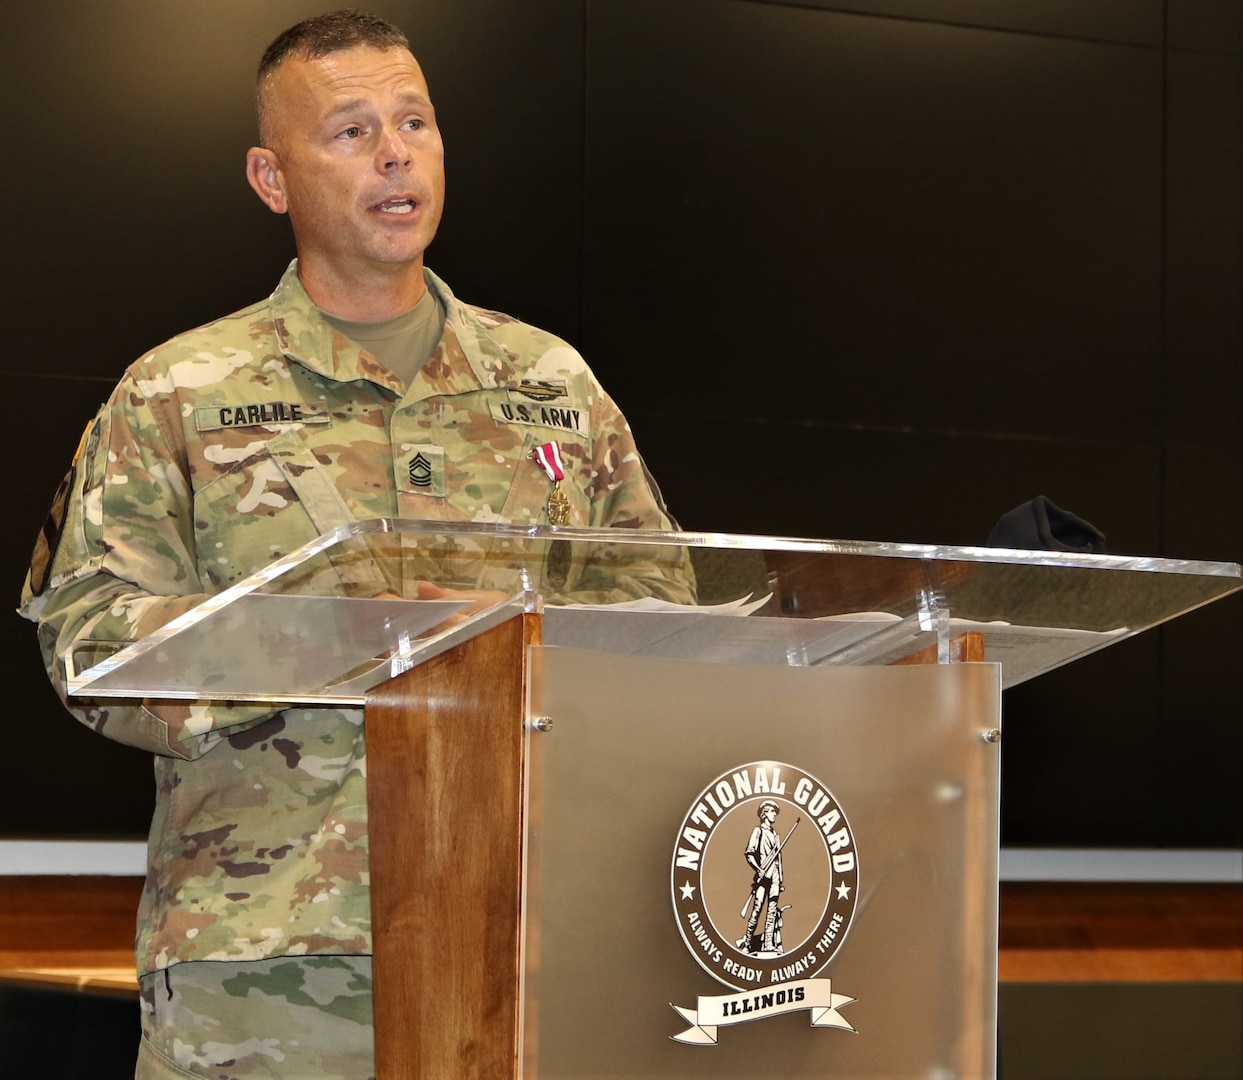 Master Sgt. Joshuah Carlile, of Bourbonnais, Illinois, addresses friends and family attending his retirement ceremony Sept. 12 at the Illinois Military Academy, Camp Lincoln, Springfield, Illinois.